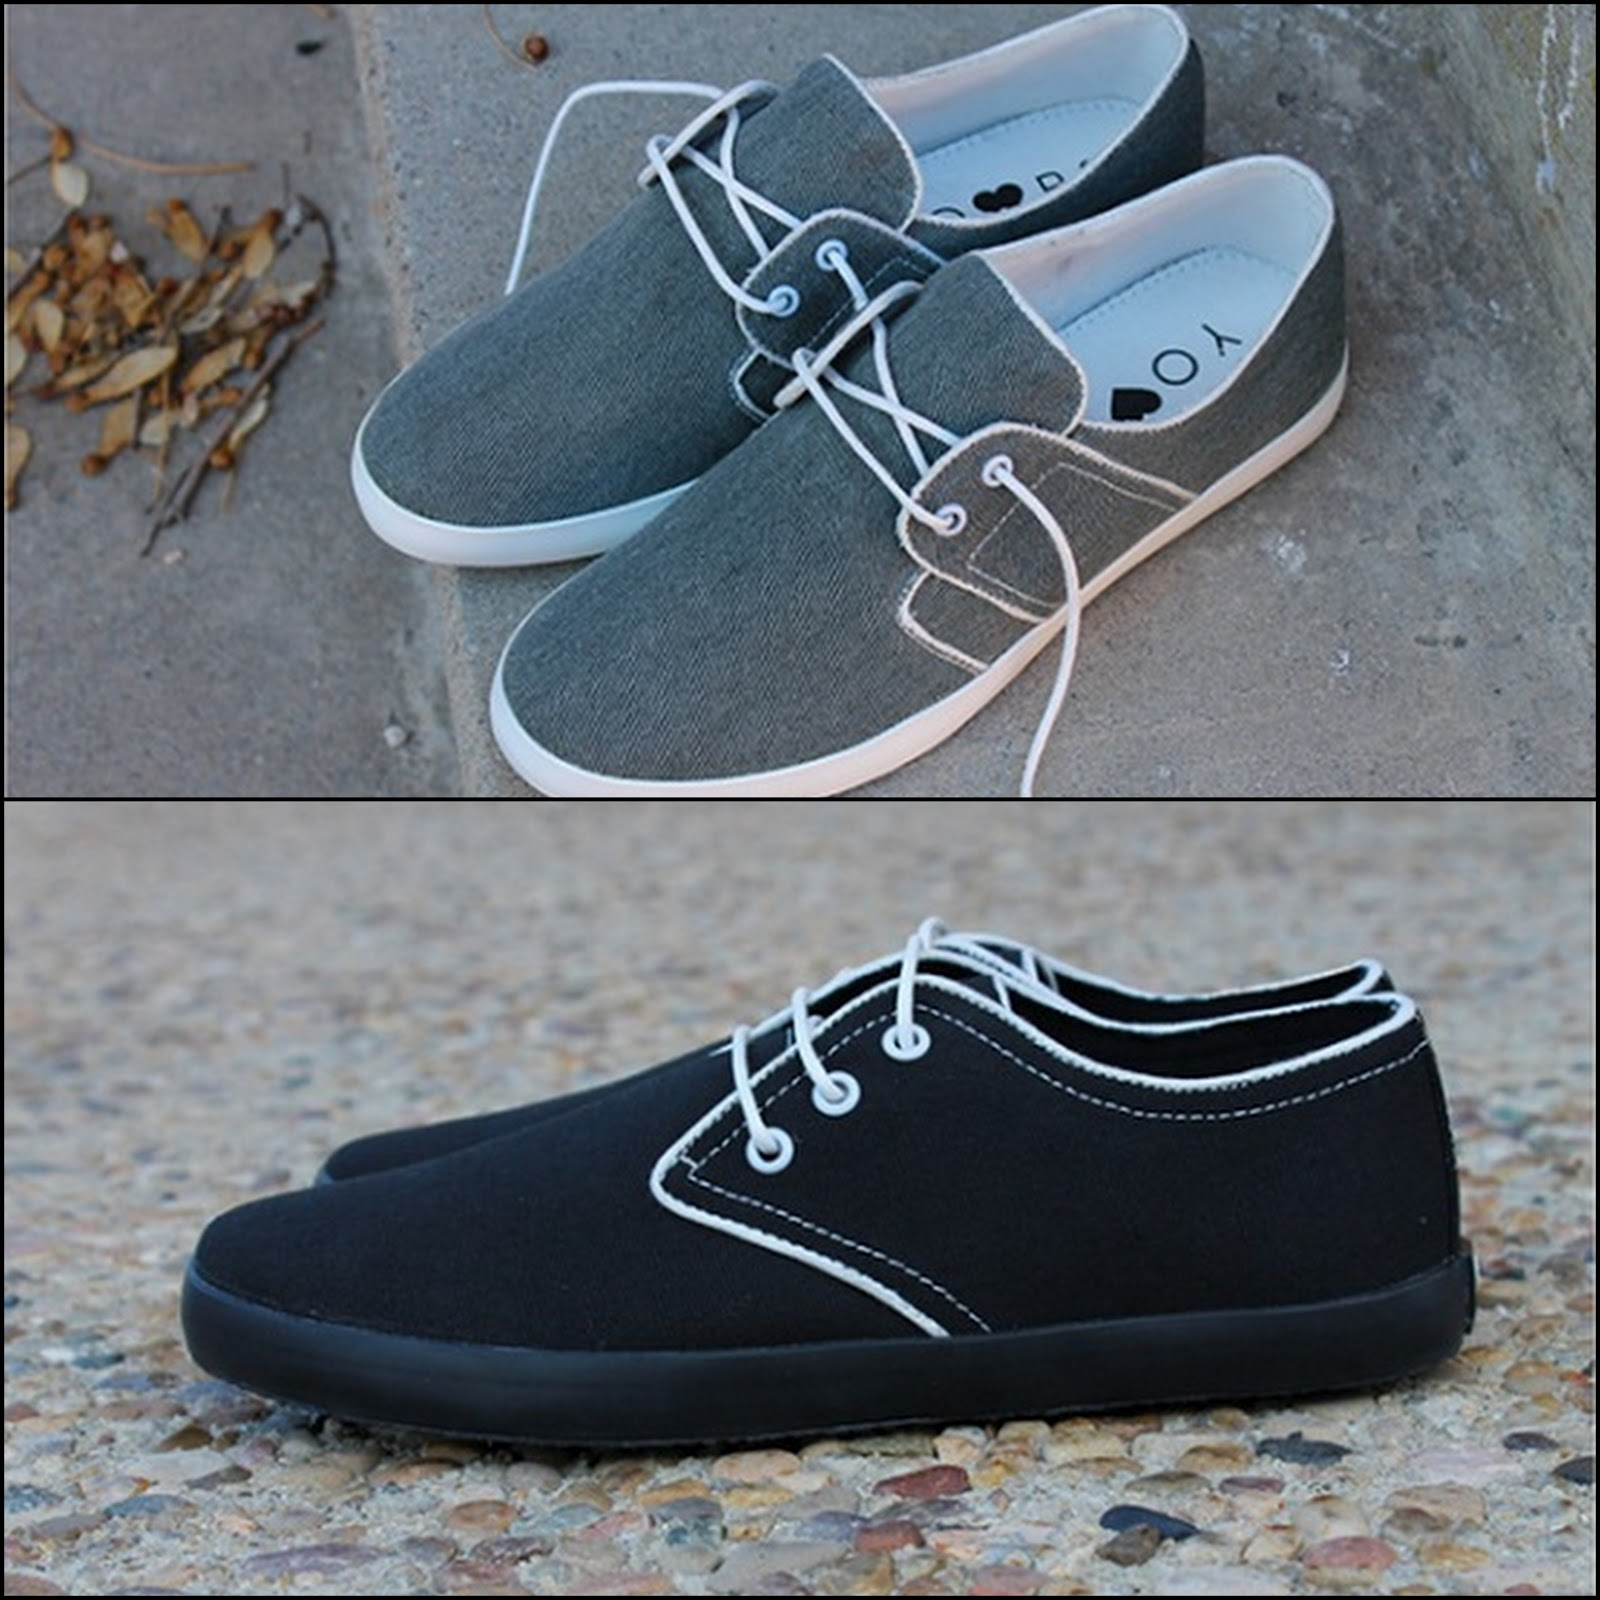 Yours Shoes Minimalist Casual Canvas Shoes Independent Fashion